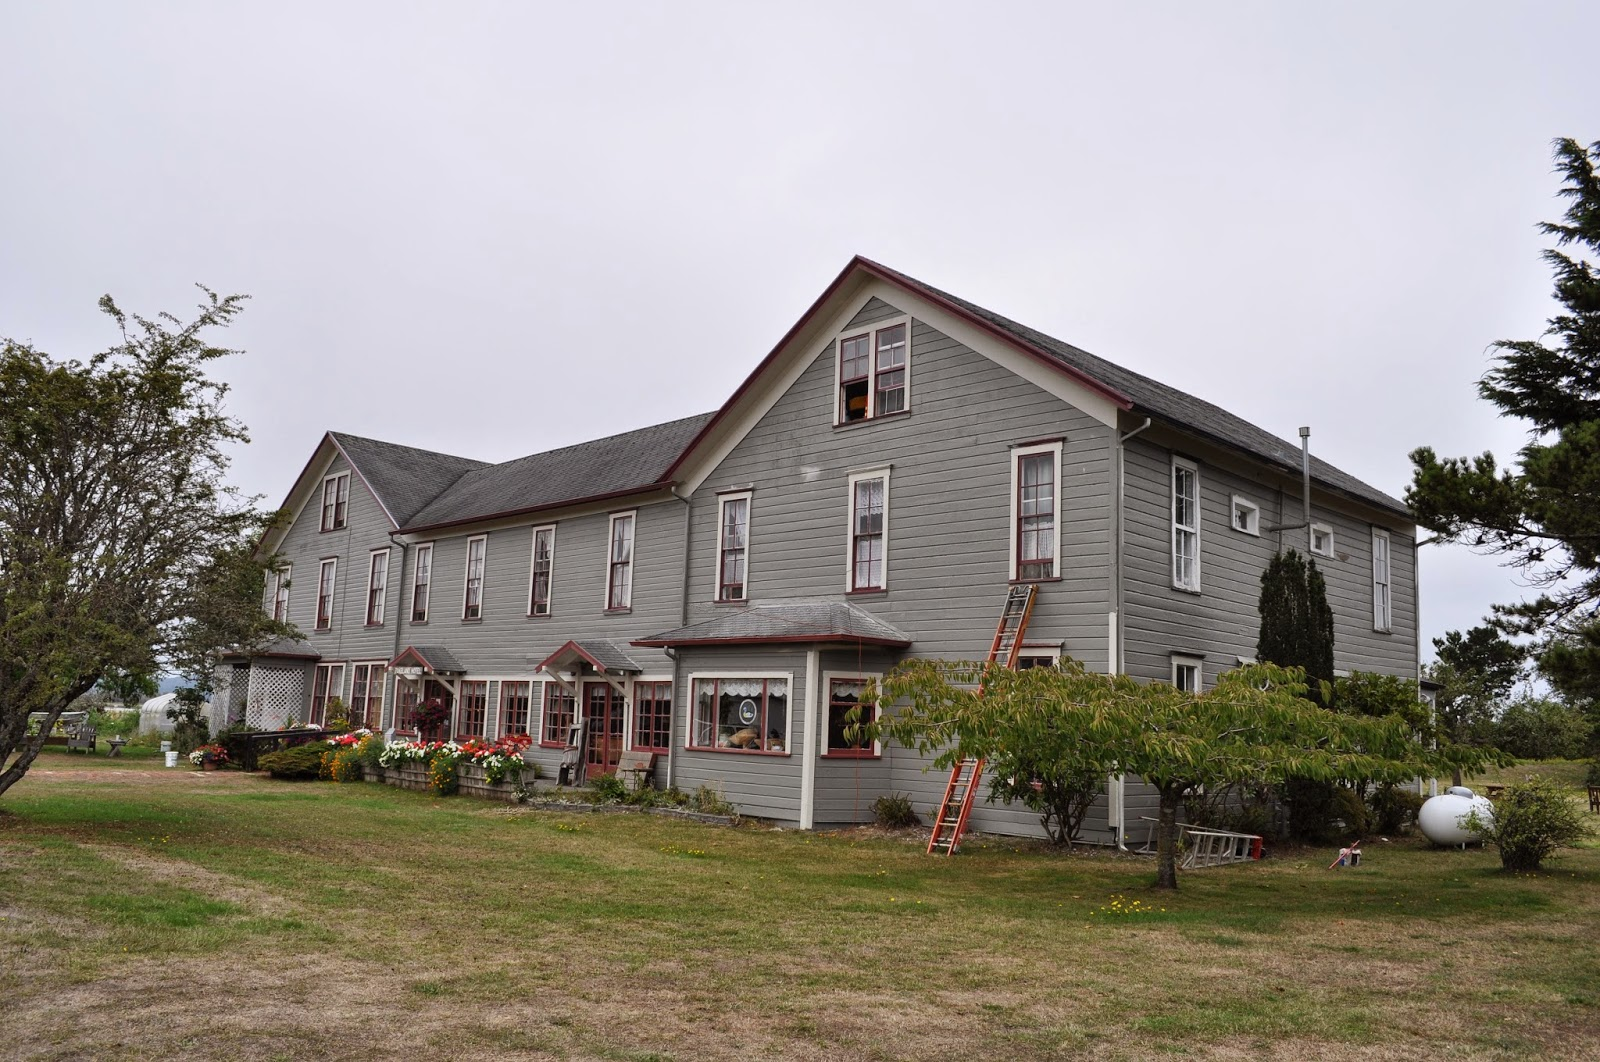 6 most haunted places in washington state